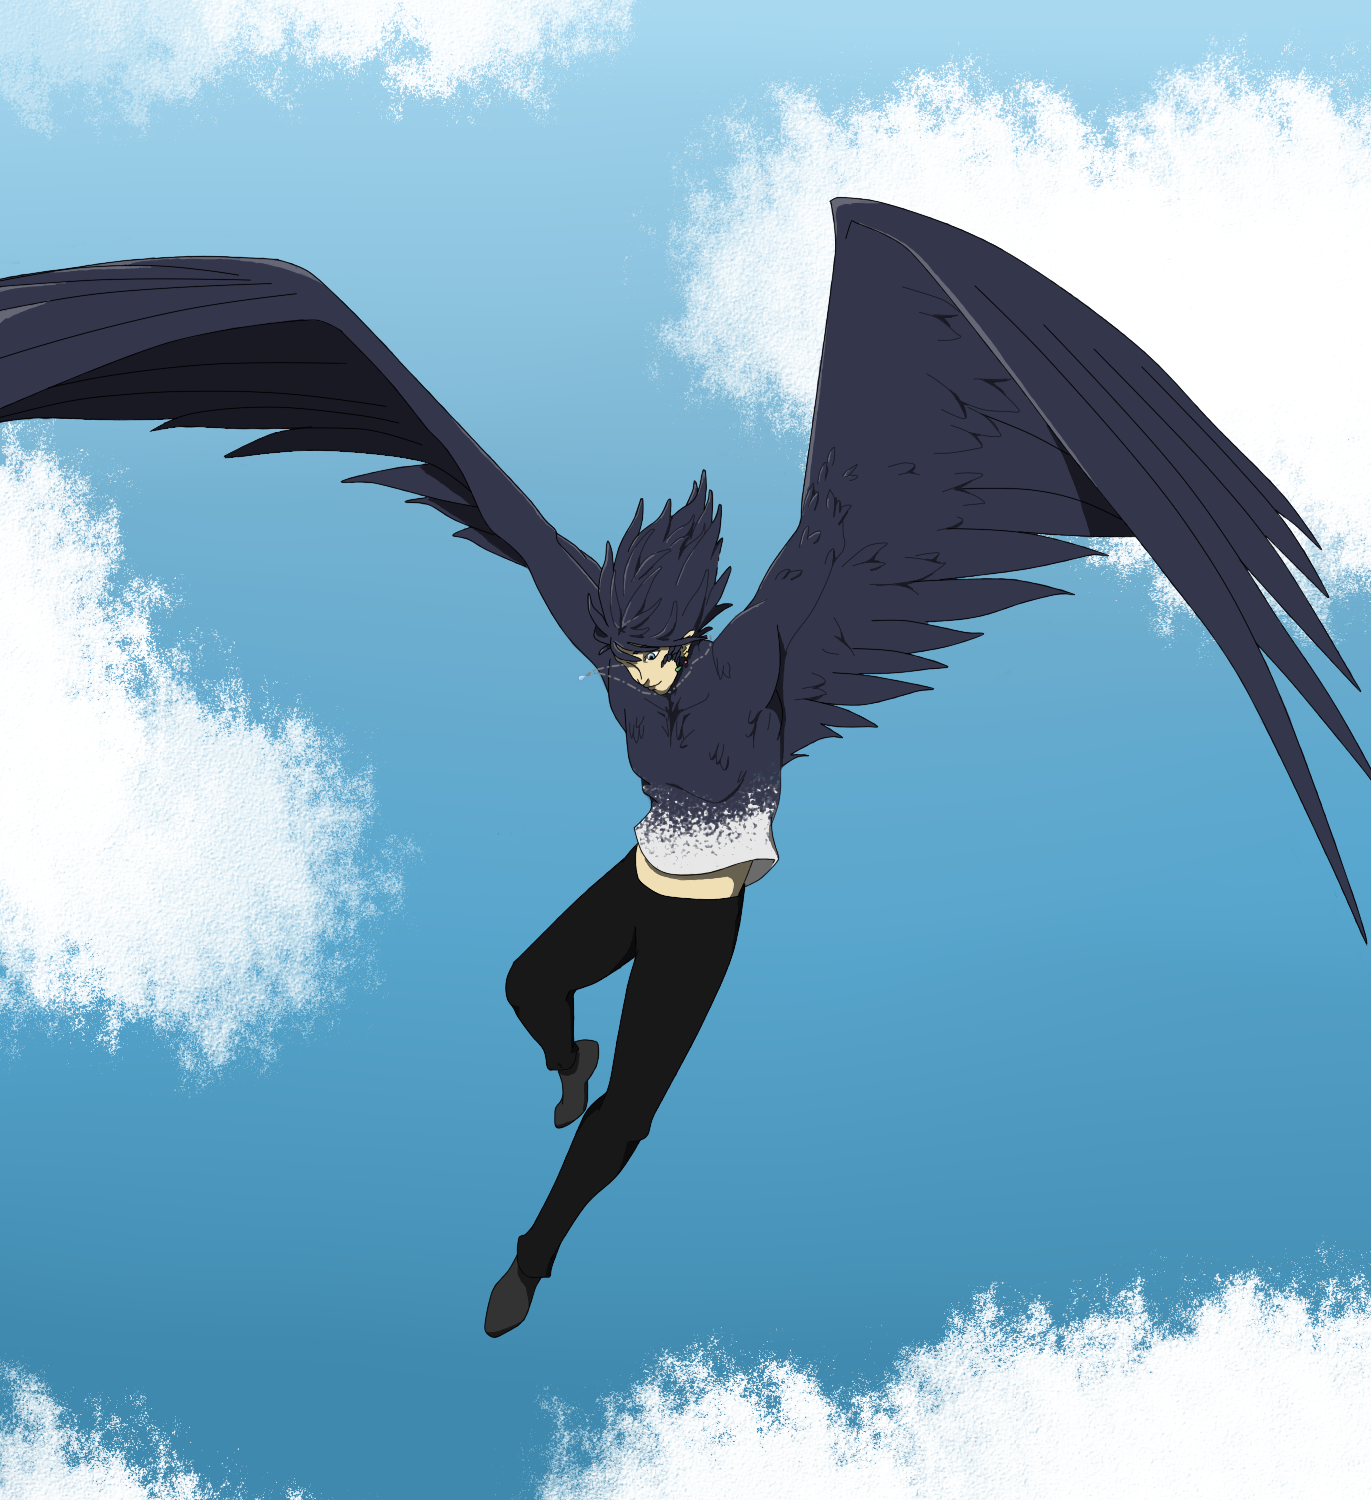 Howl Flying By Wolfeneclipse On Deviantart Ghibli Artwork Studio Ghibli Art Ghibli Art